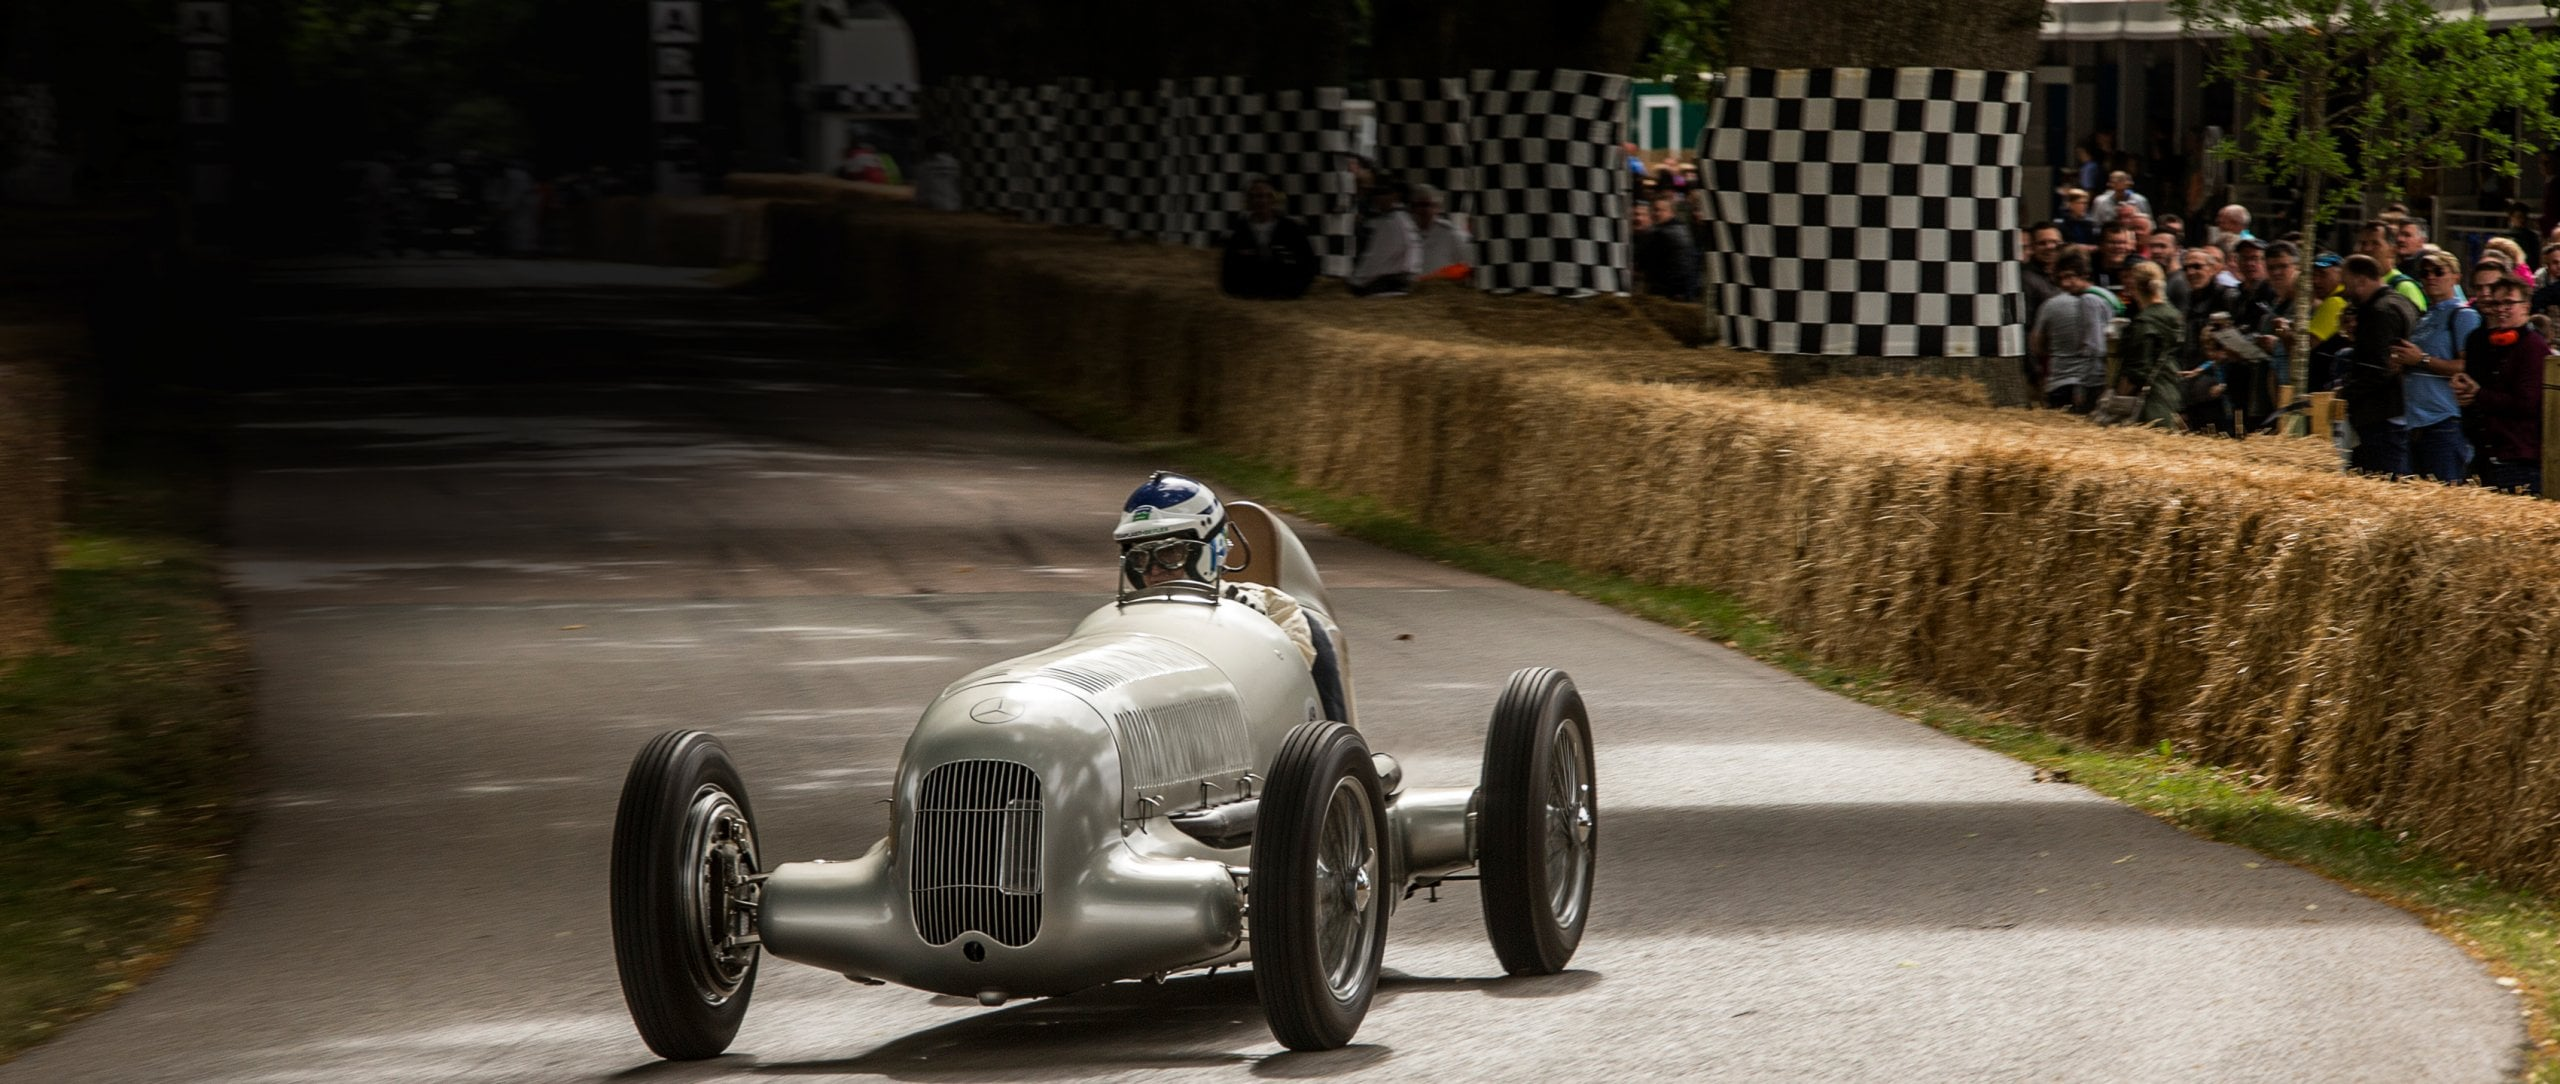 To mark the 125th anniversary of its involvement in motorsports, Mercedes-Benz Classic is sending fourteen of its crown jewels to the Goodwood Festival of Speed.